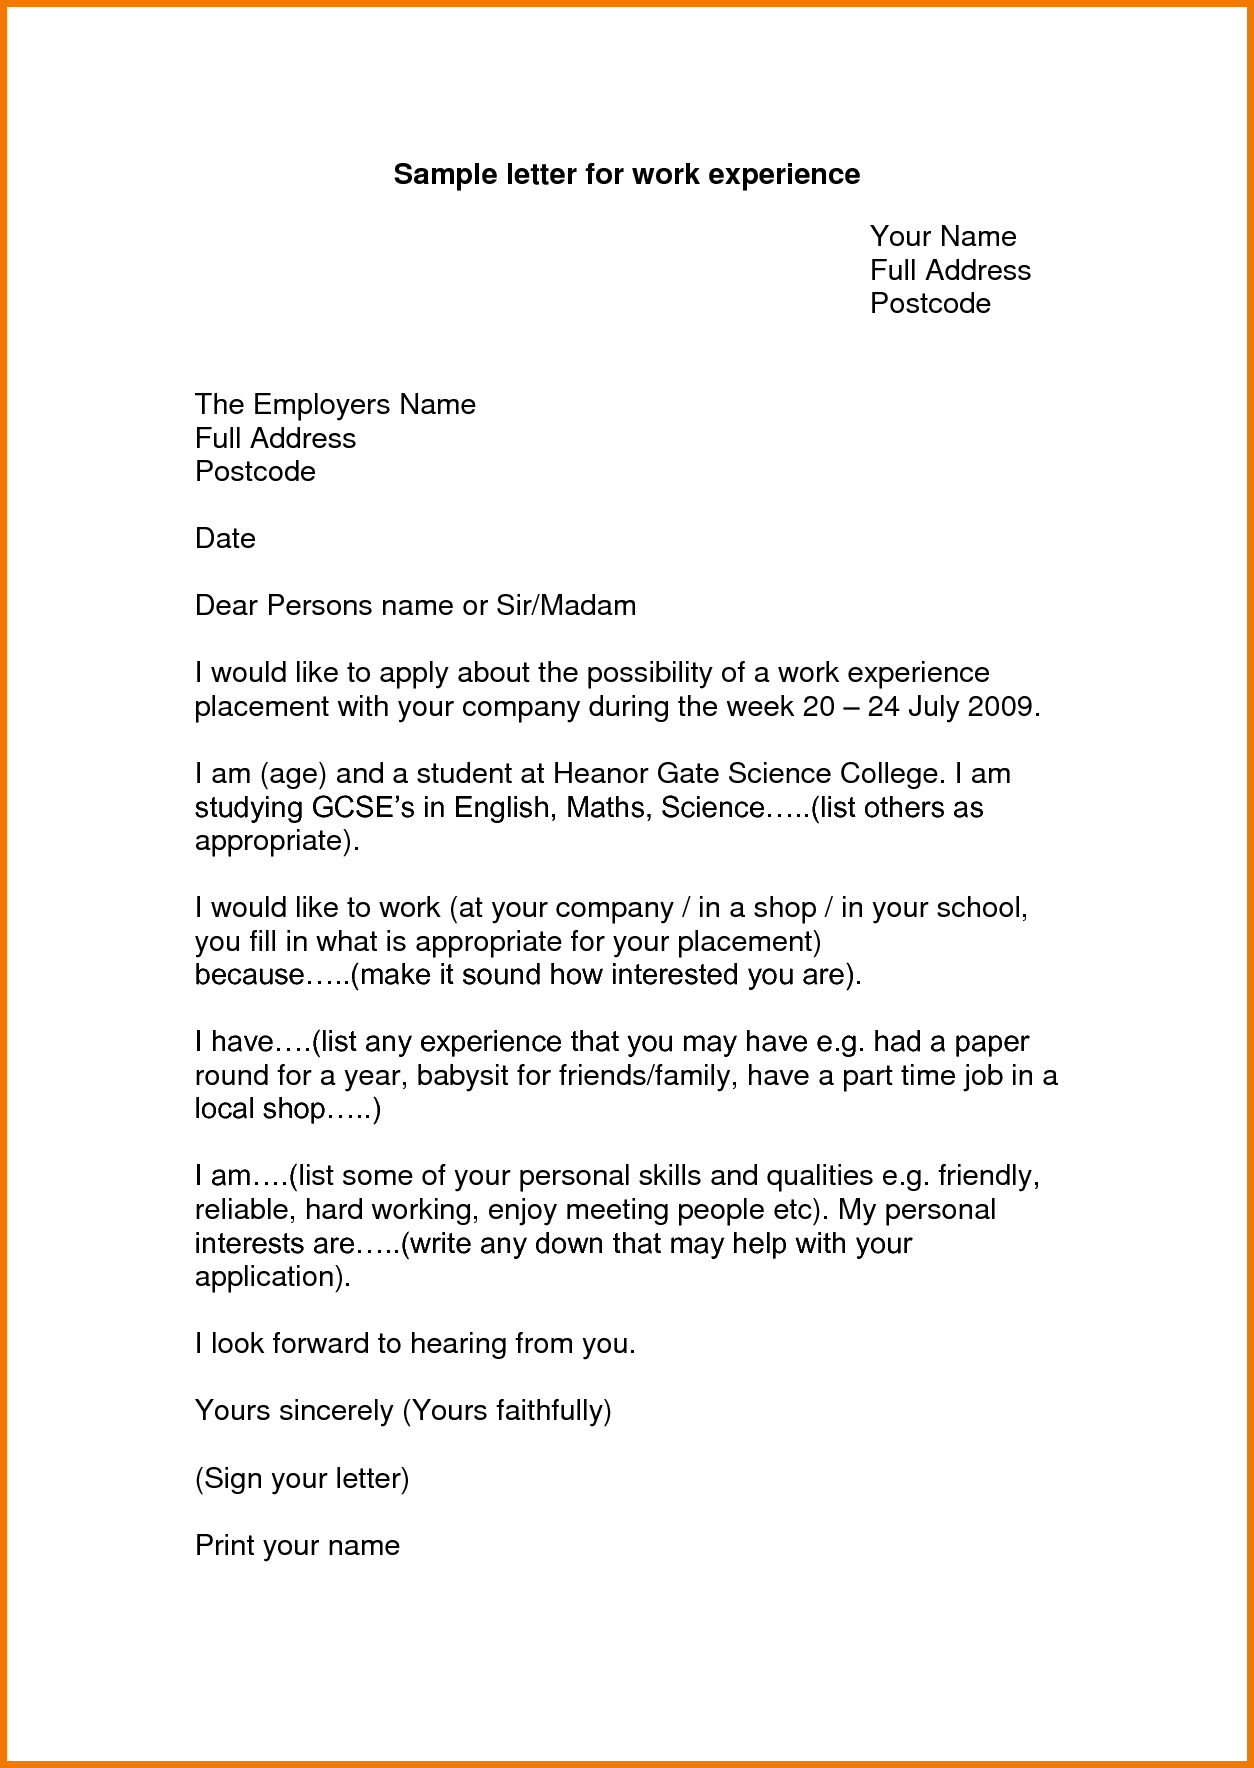 Experience Letter Format For Work Appeal Letters Sample Certificate